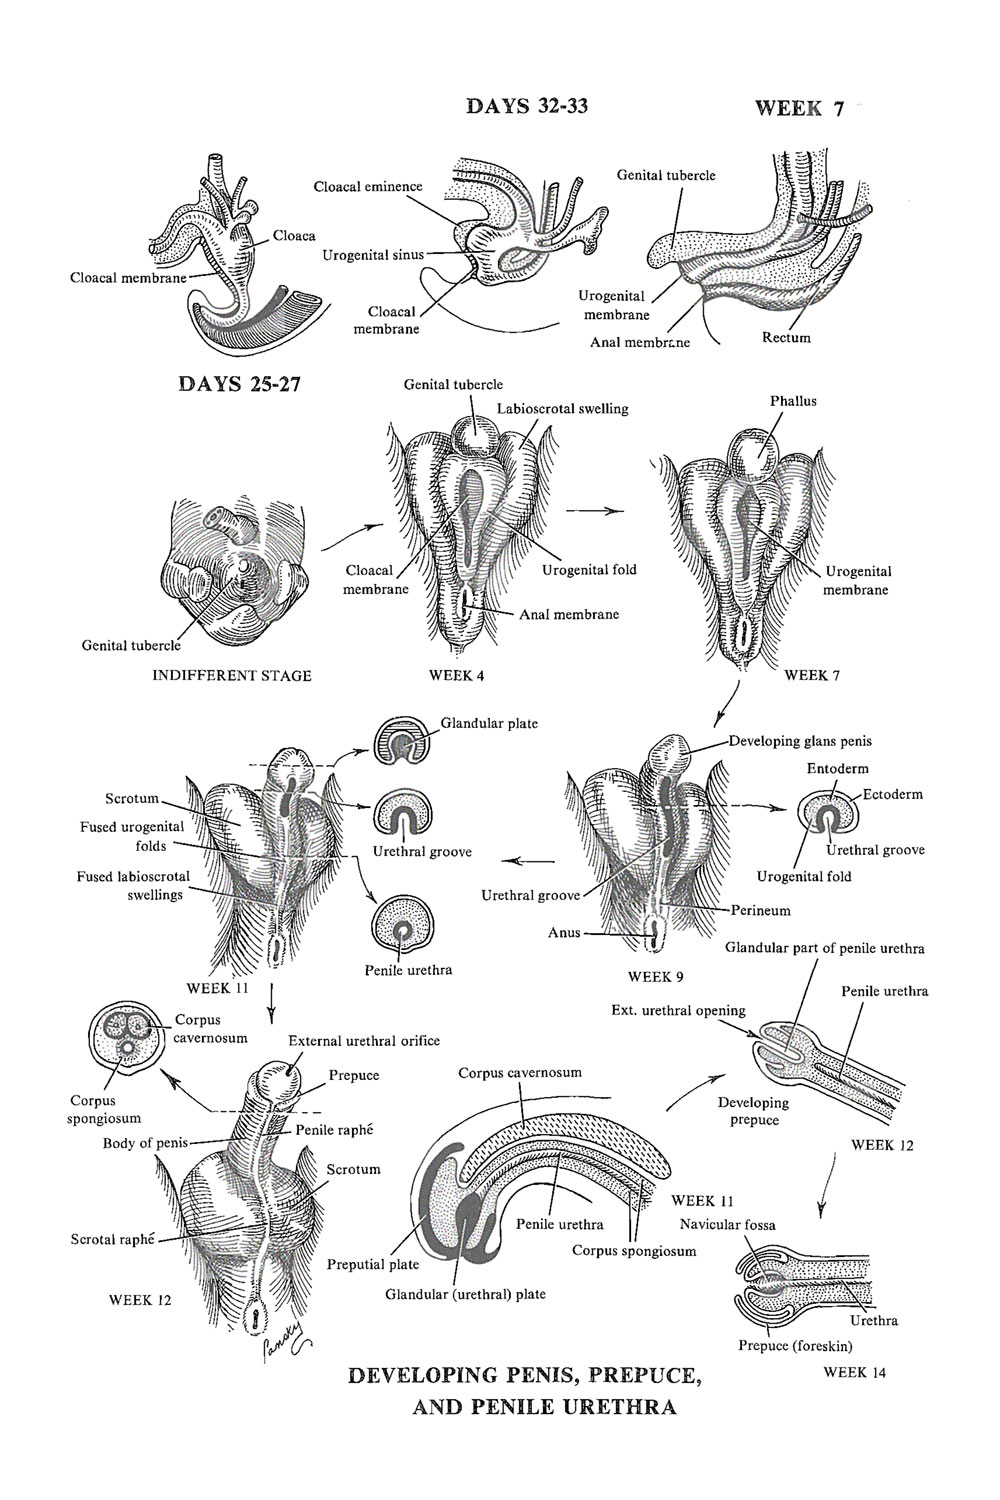 development of the male external genital organs: image #1